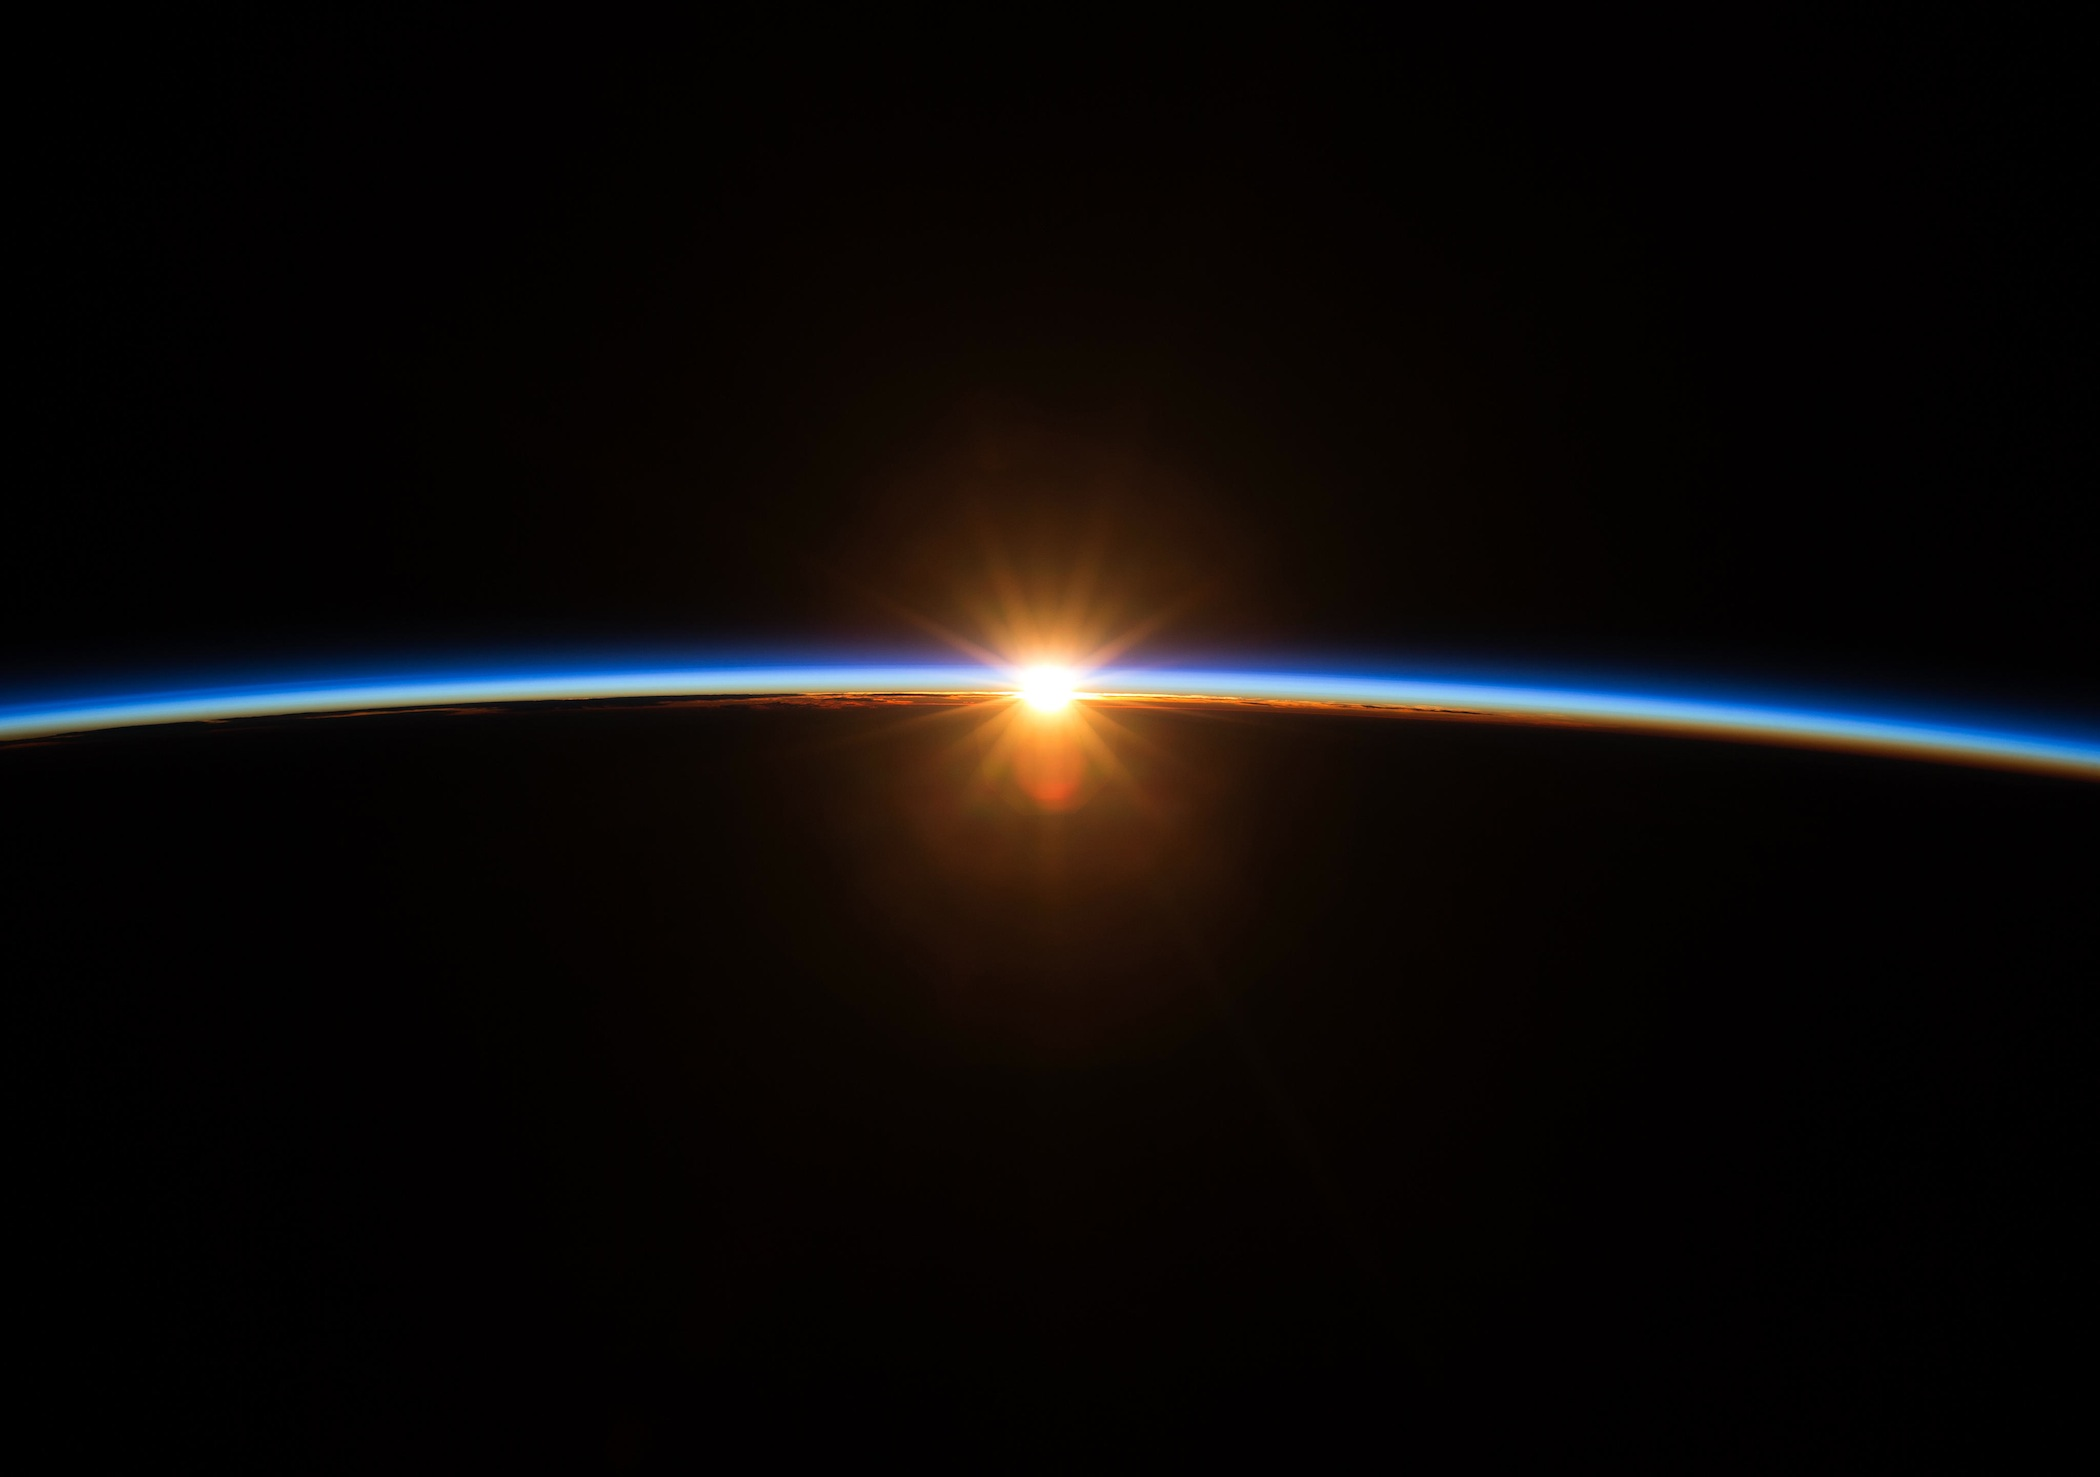 space station sunrise wallpaper - photo #46